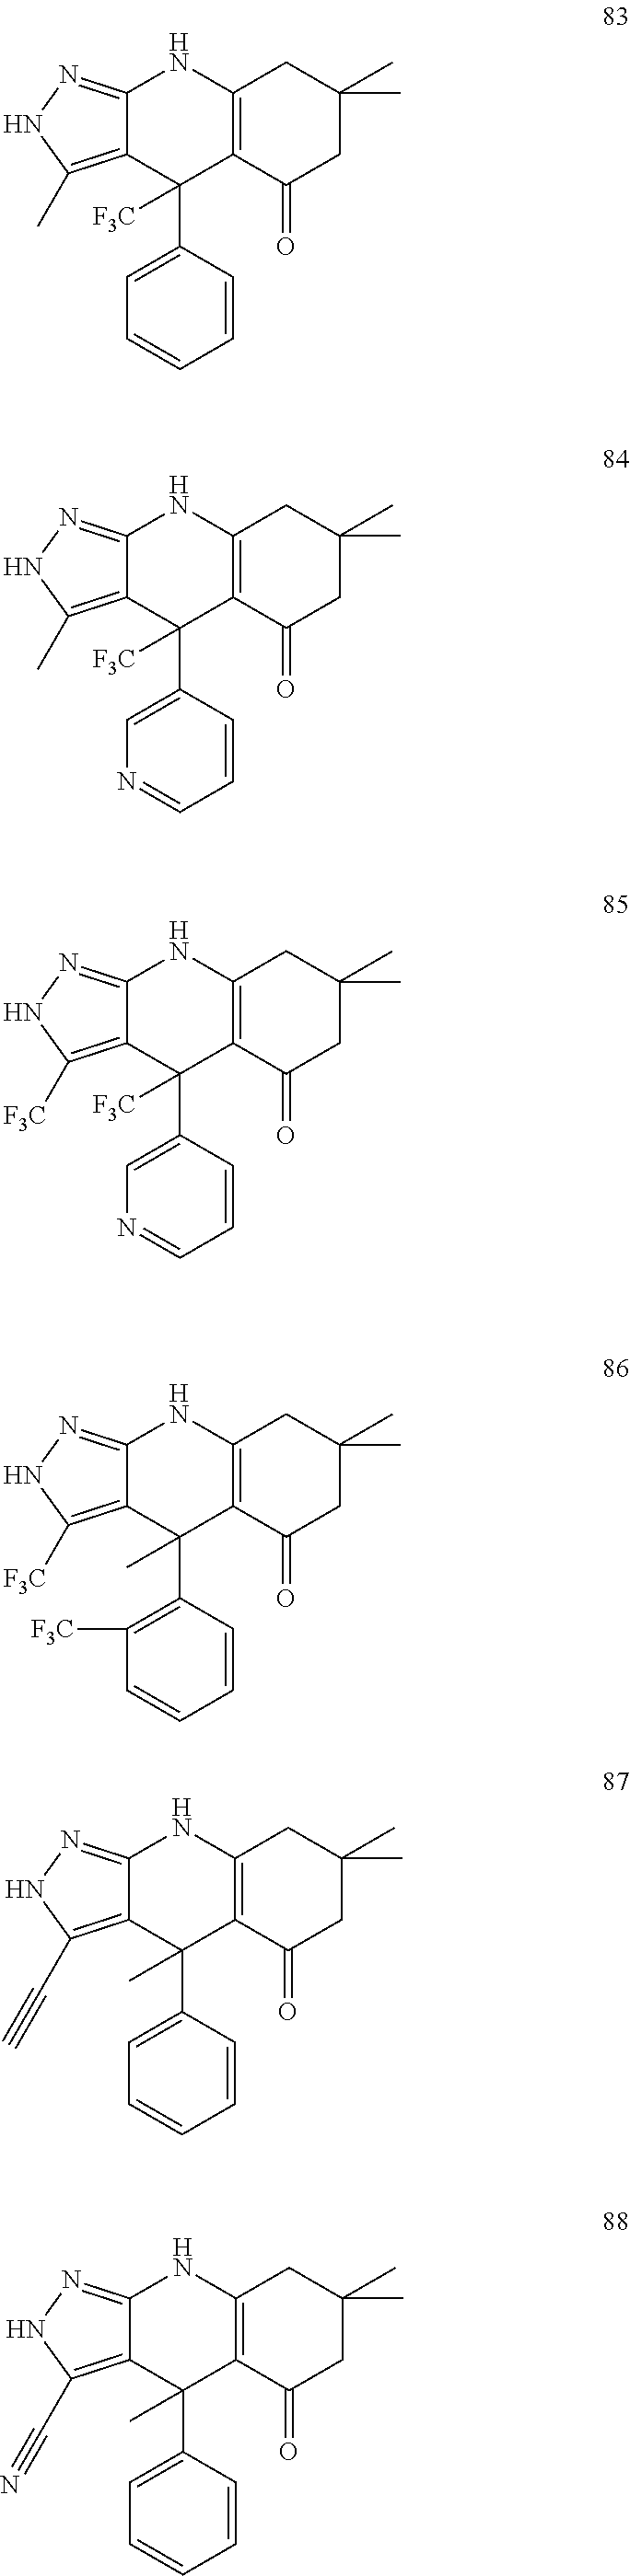 Us9096594b2 Kinase Inhibitors And Methods Of Use Thereof Google Rsk2 Switch Wiring Diagram Figure Us09096594 20150804 C00023